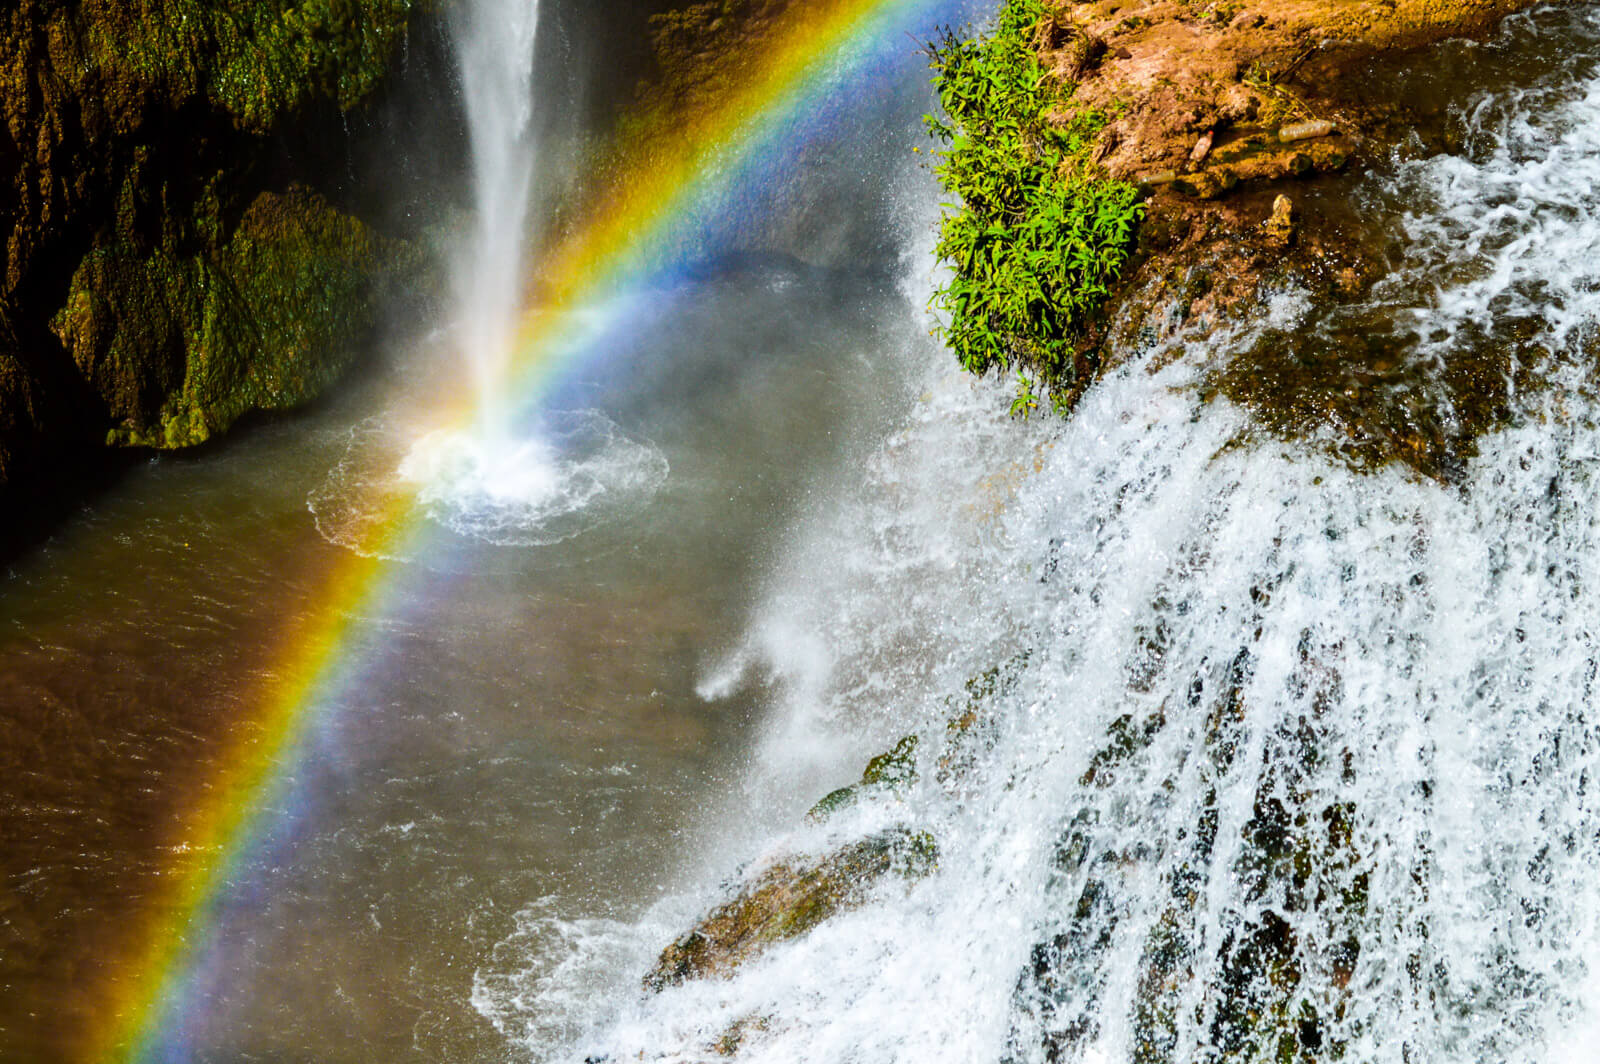 Rainbows at the Ouzoud Waterfalls